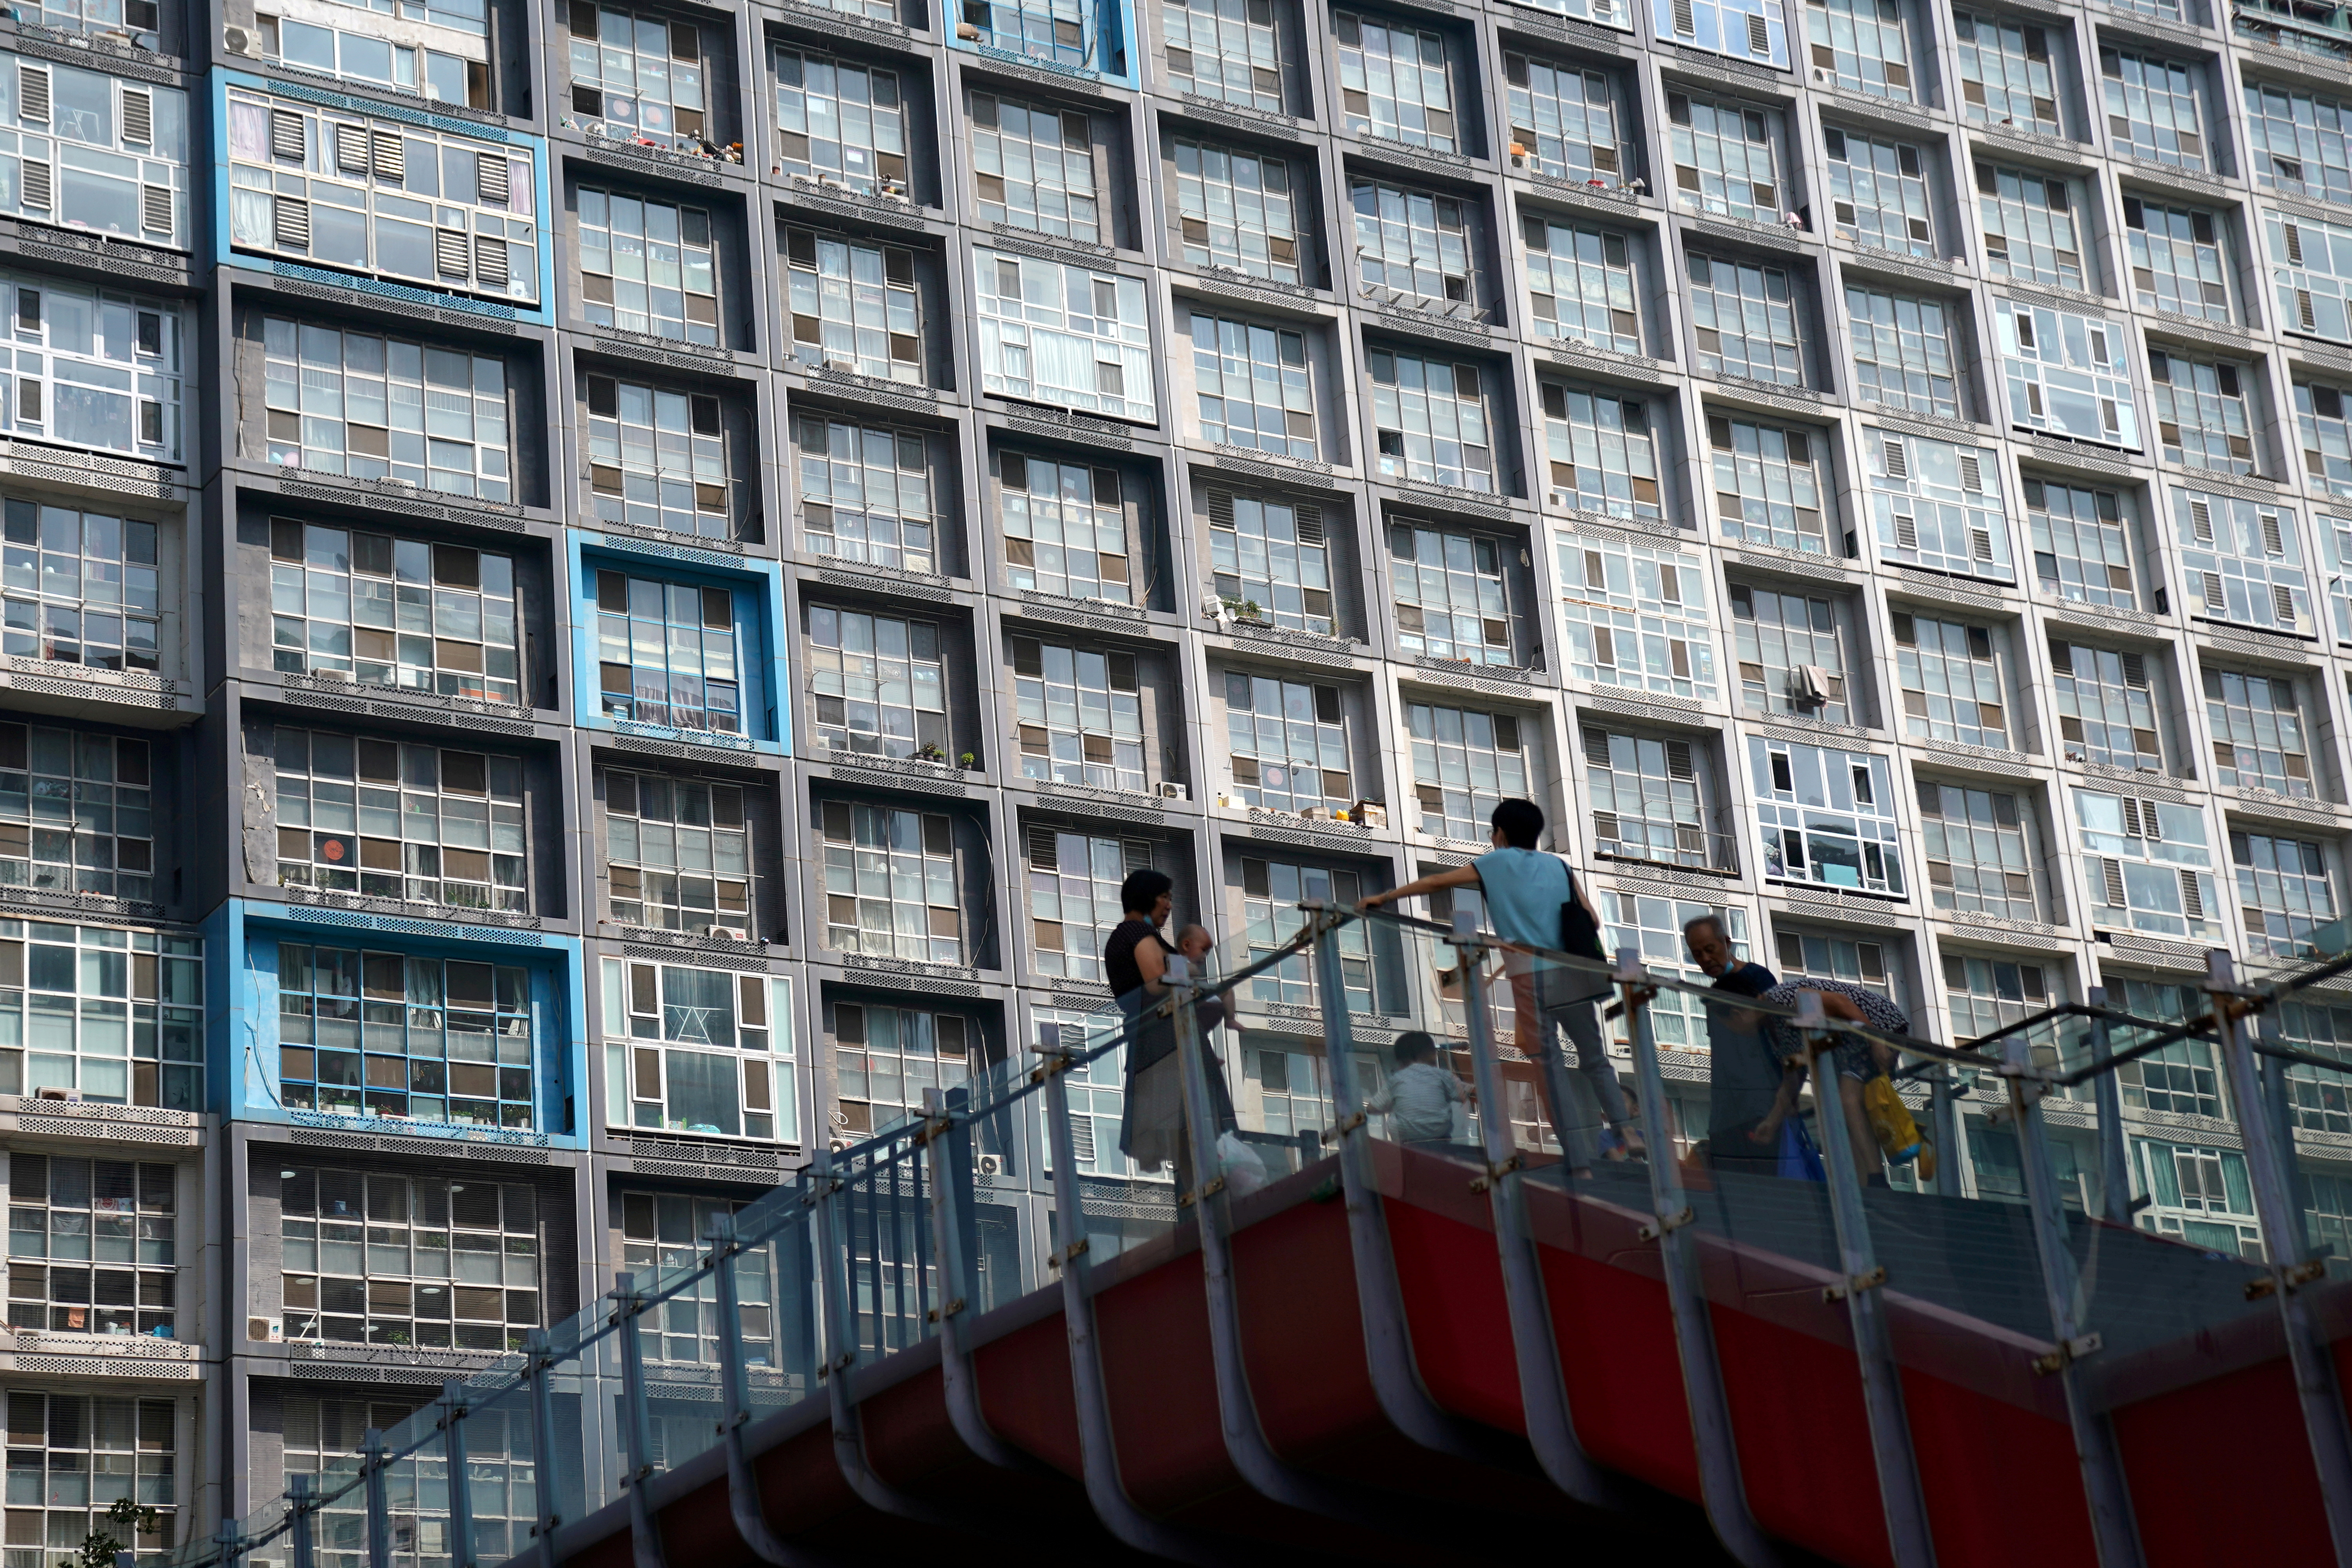 People wearing face masks are seen on an overpass in front of a residential building in Beijing, China August 11, 2020. Picture taken August 11, 2020. REUTERS/Tingshu Wang